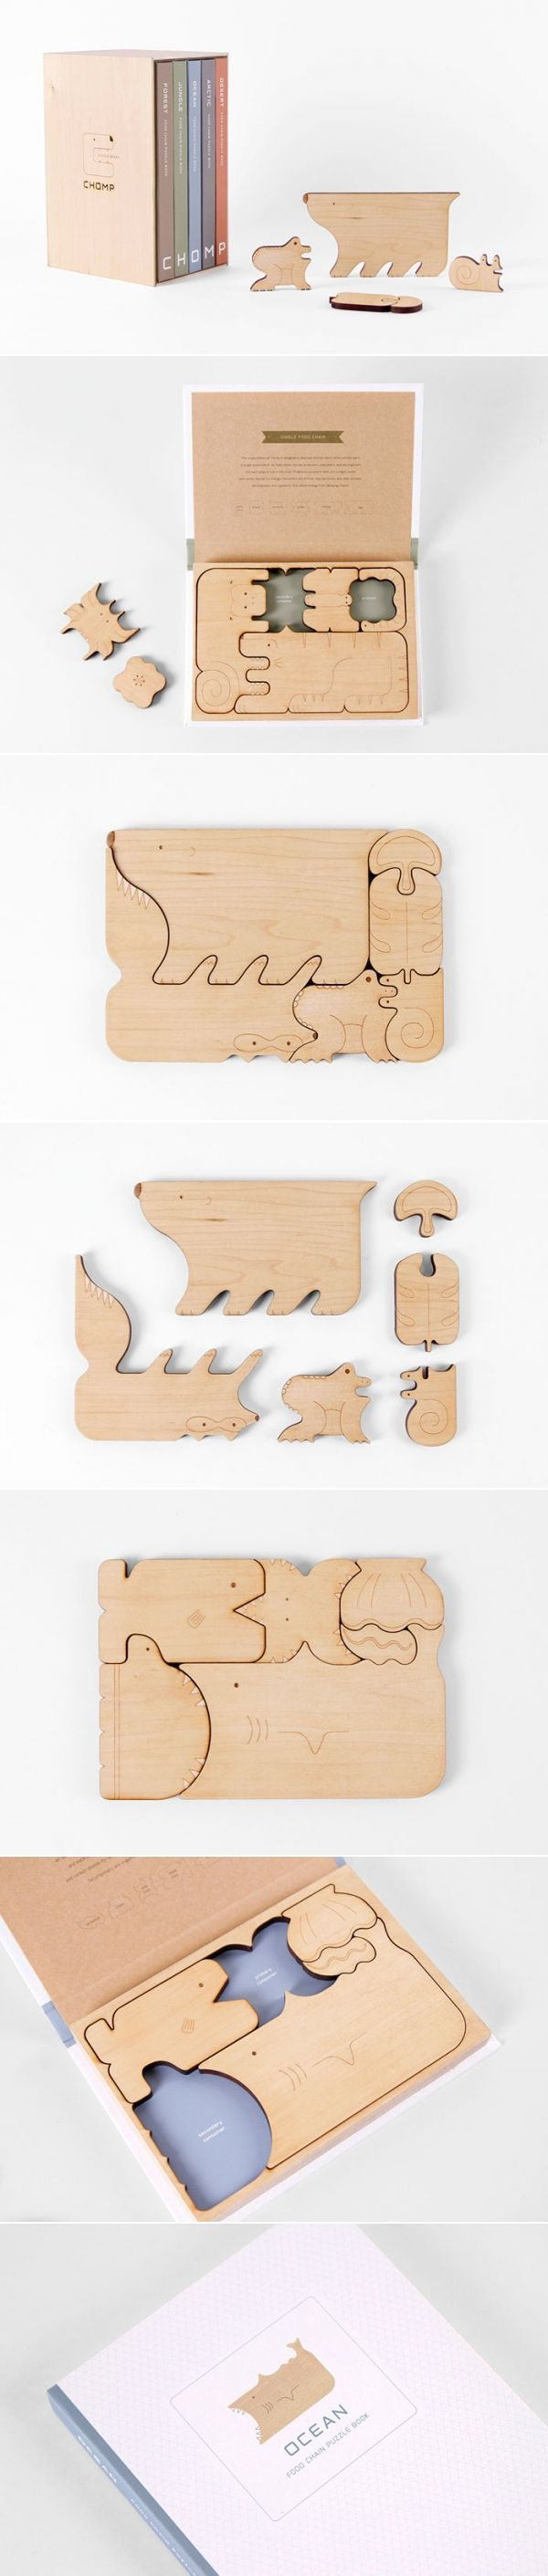 WOW - GREAT STUFF // The beautifully designed CHOMP food chain puzzle books by Mirim Seo and Kelly Holohan. We want one!